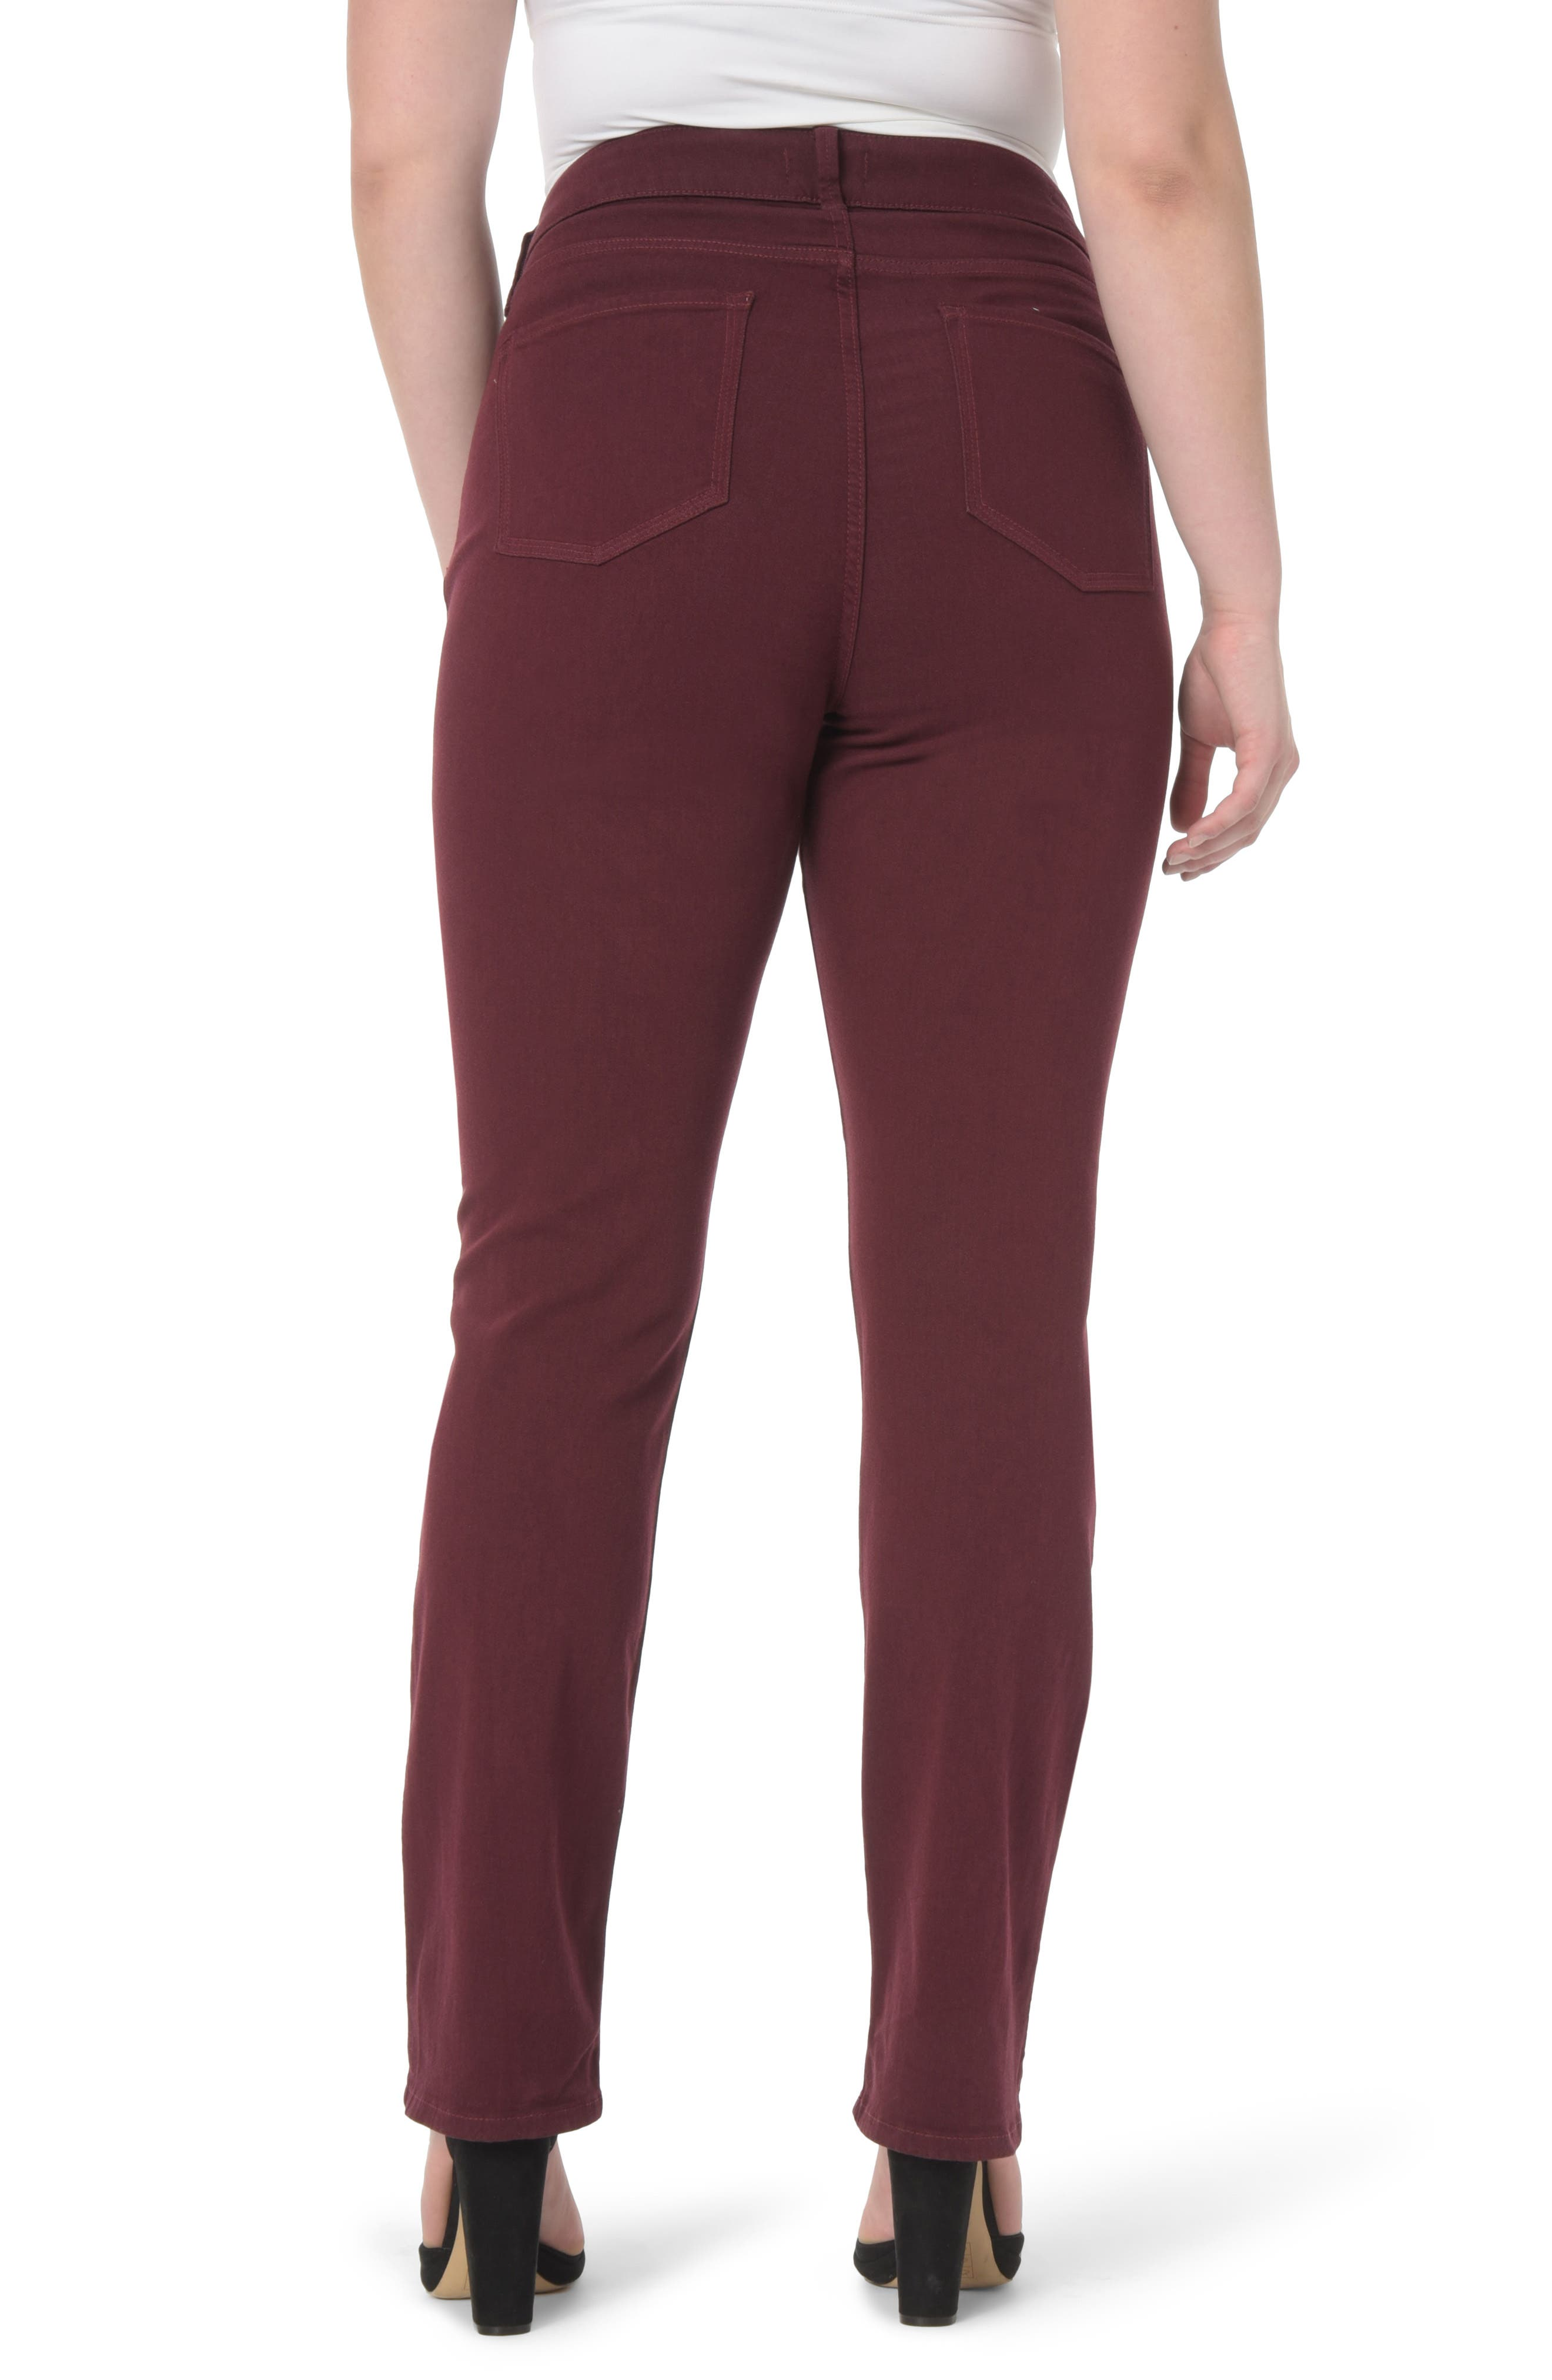 Marilyn Stretch Straight Leg Jeans,                             Alternate thumbnail 3, color,                             Deep Currant